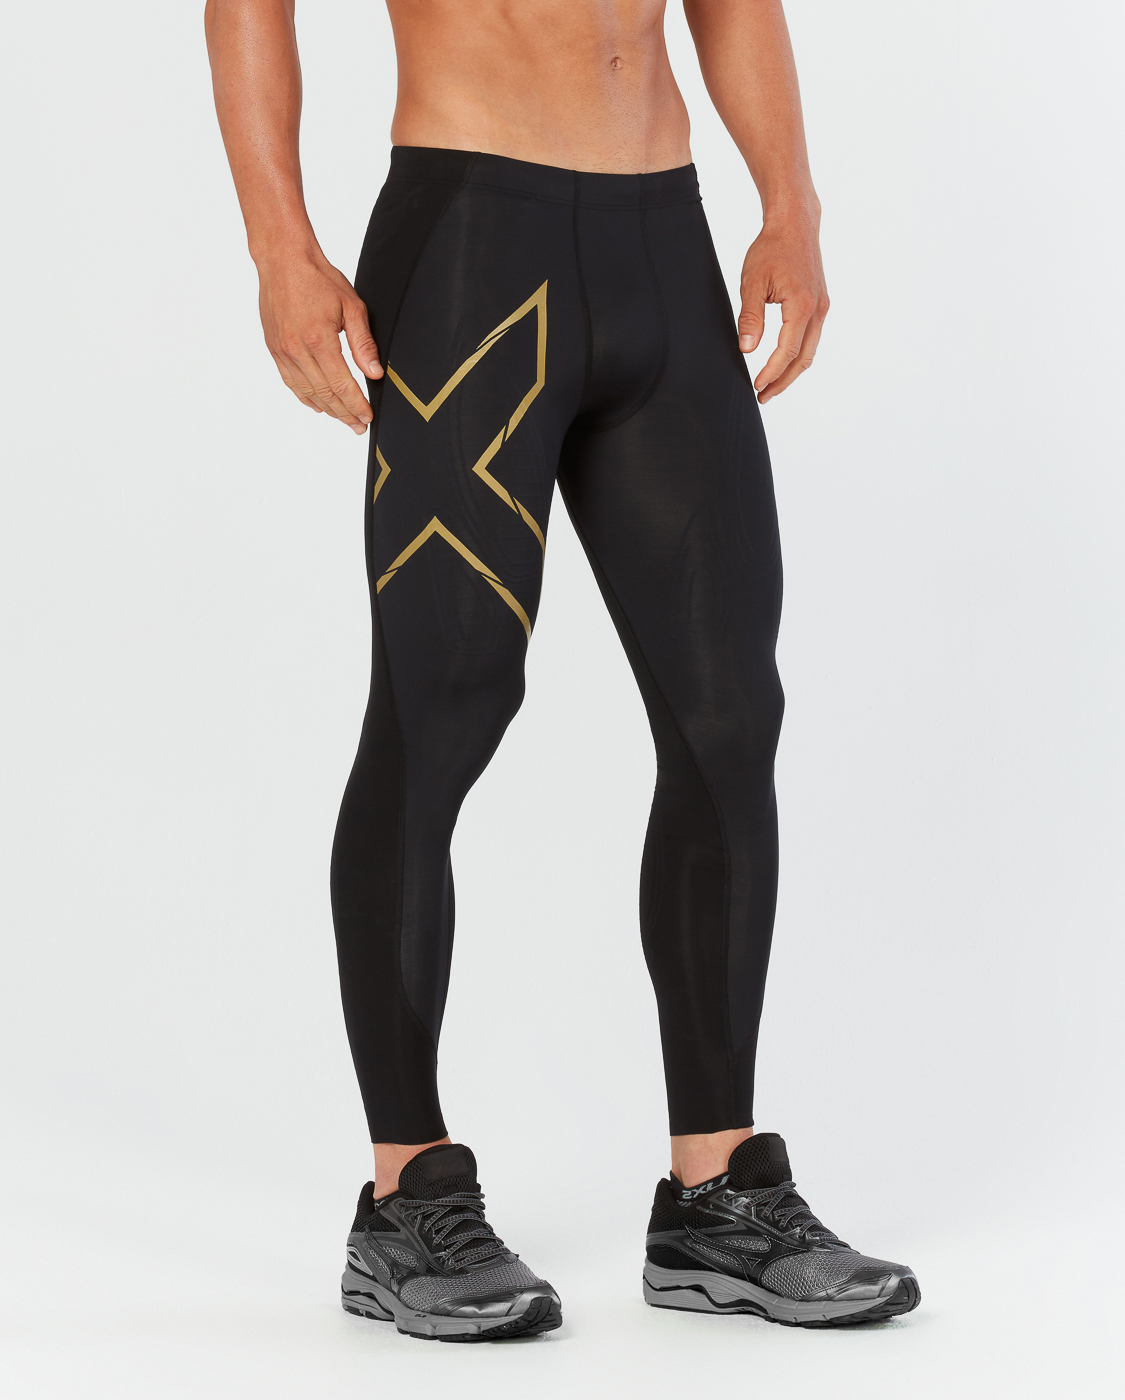 Тайтсы компрессионные 2XU MCS Cross Training M - Black / Gold